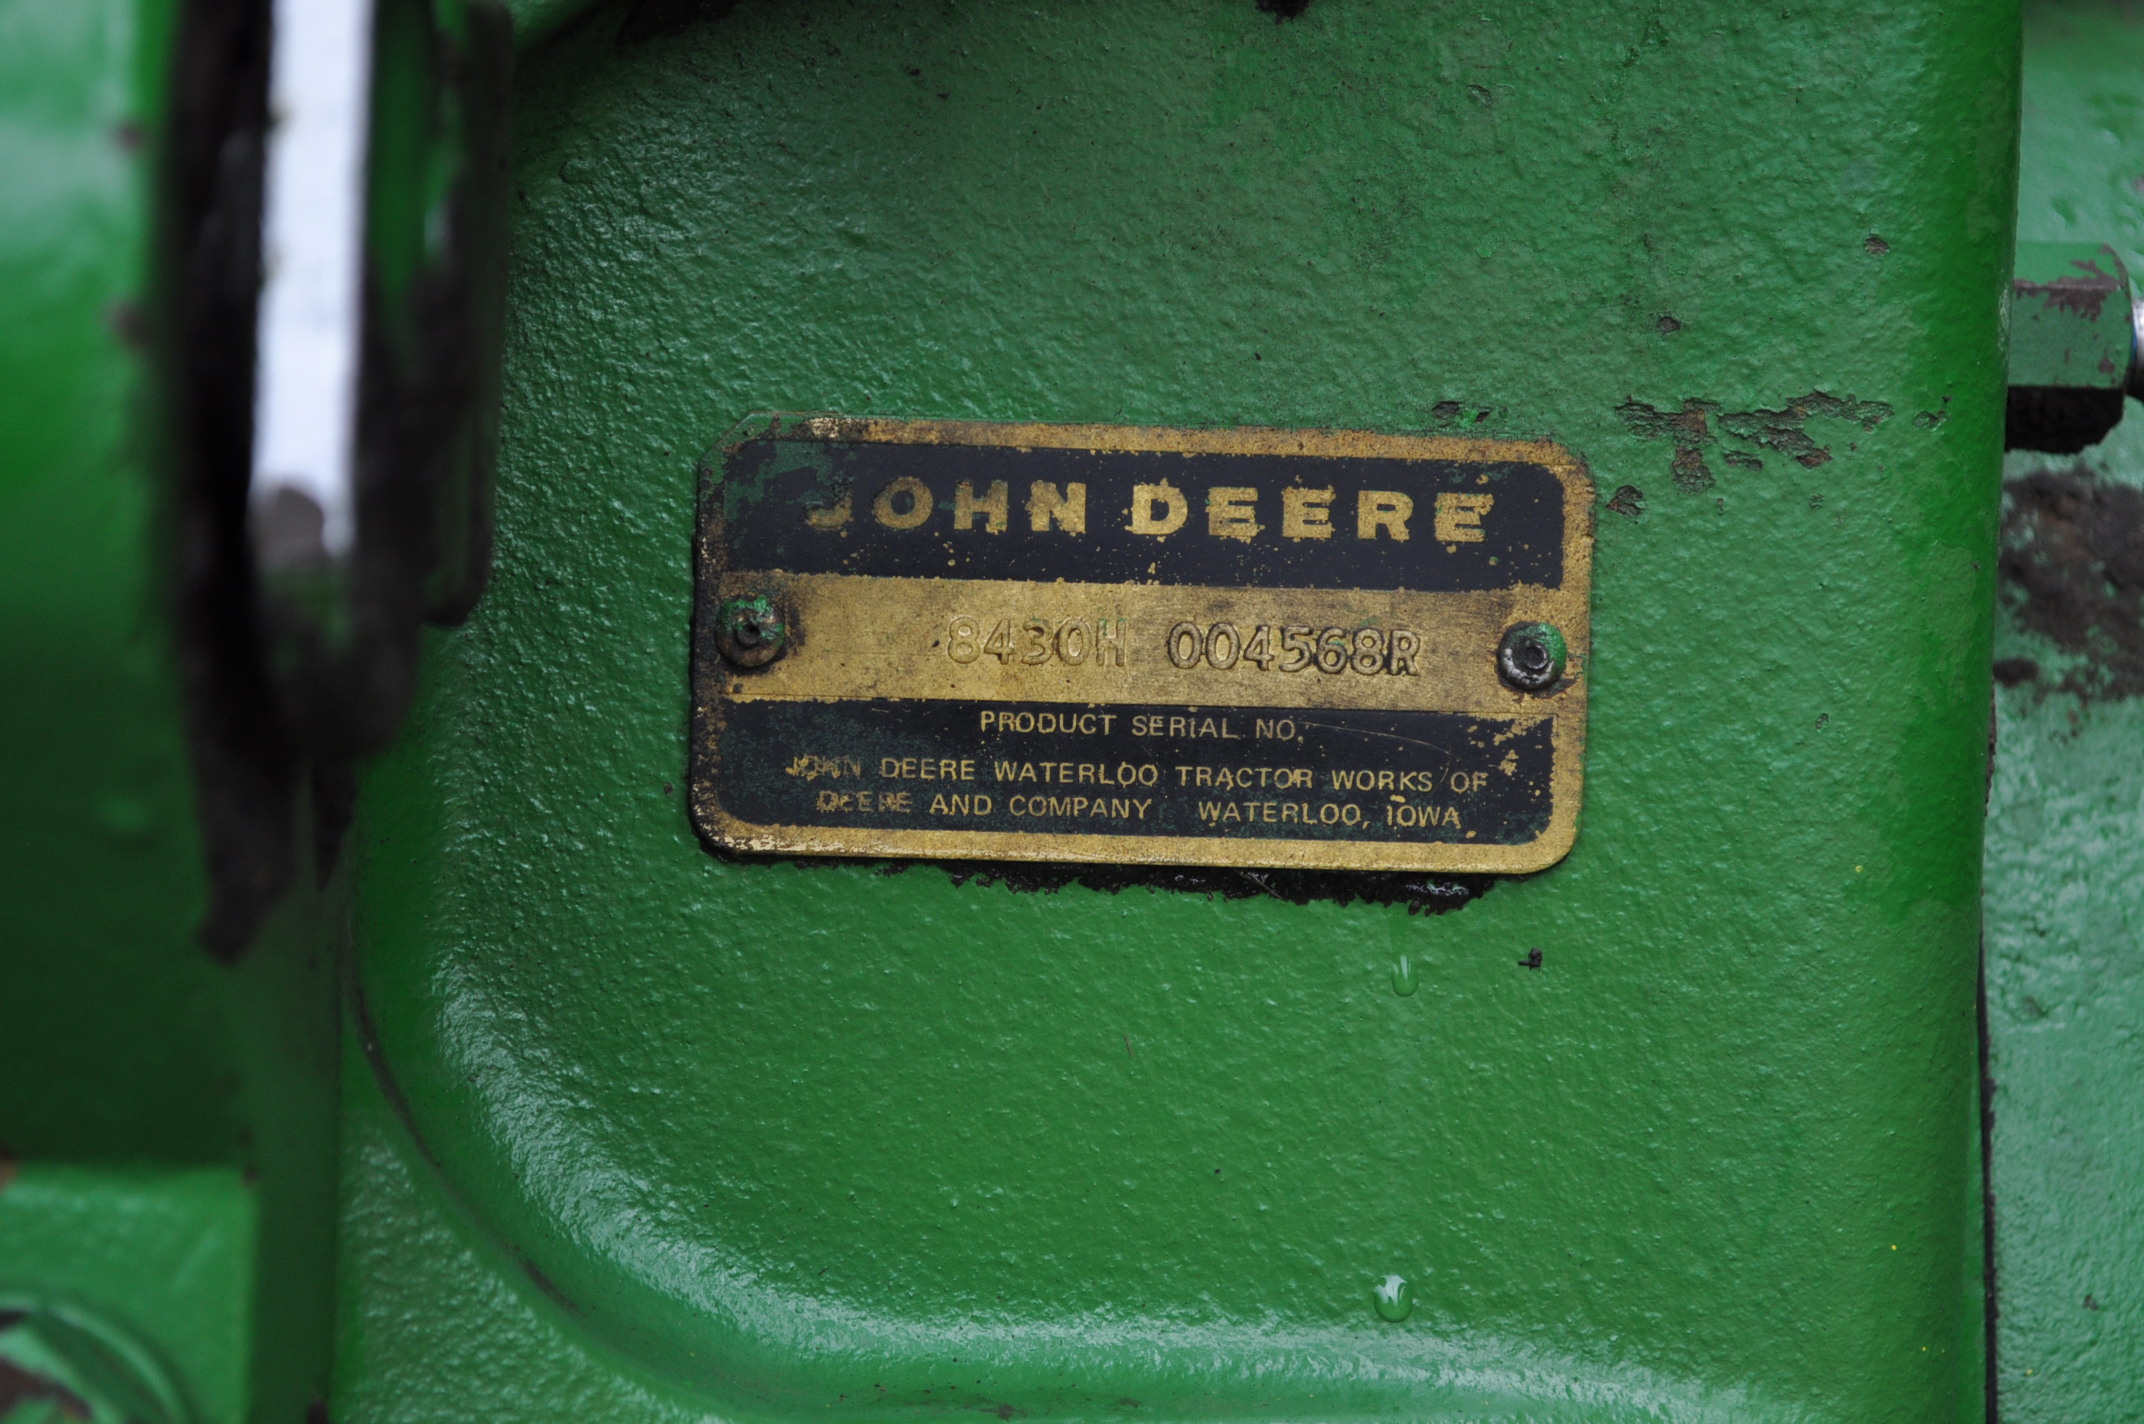 John Deere 8430 tractor, 4WD, diesel, 20.8-34 duals, CHA, Quad range, 3 hyd remotes, 1000 pto, 3 pt, - Image 13 of 19